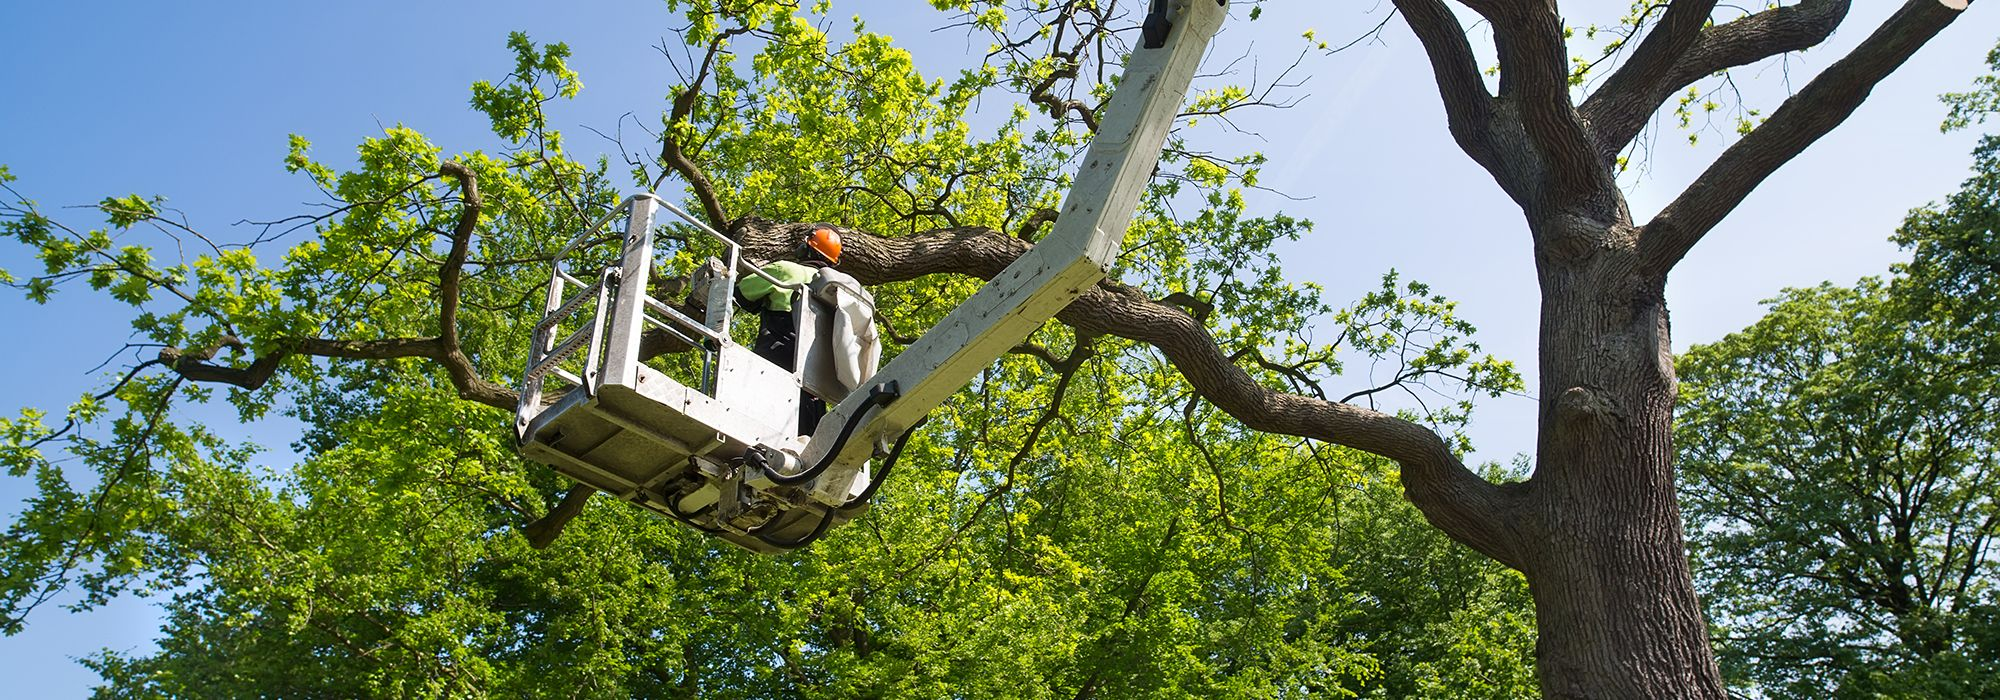 Tree Felling Services In Leicestershire